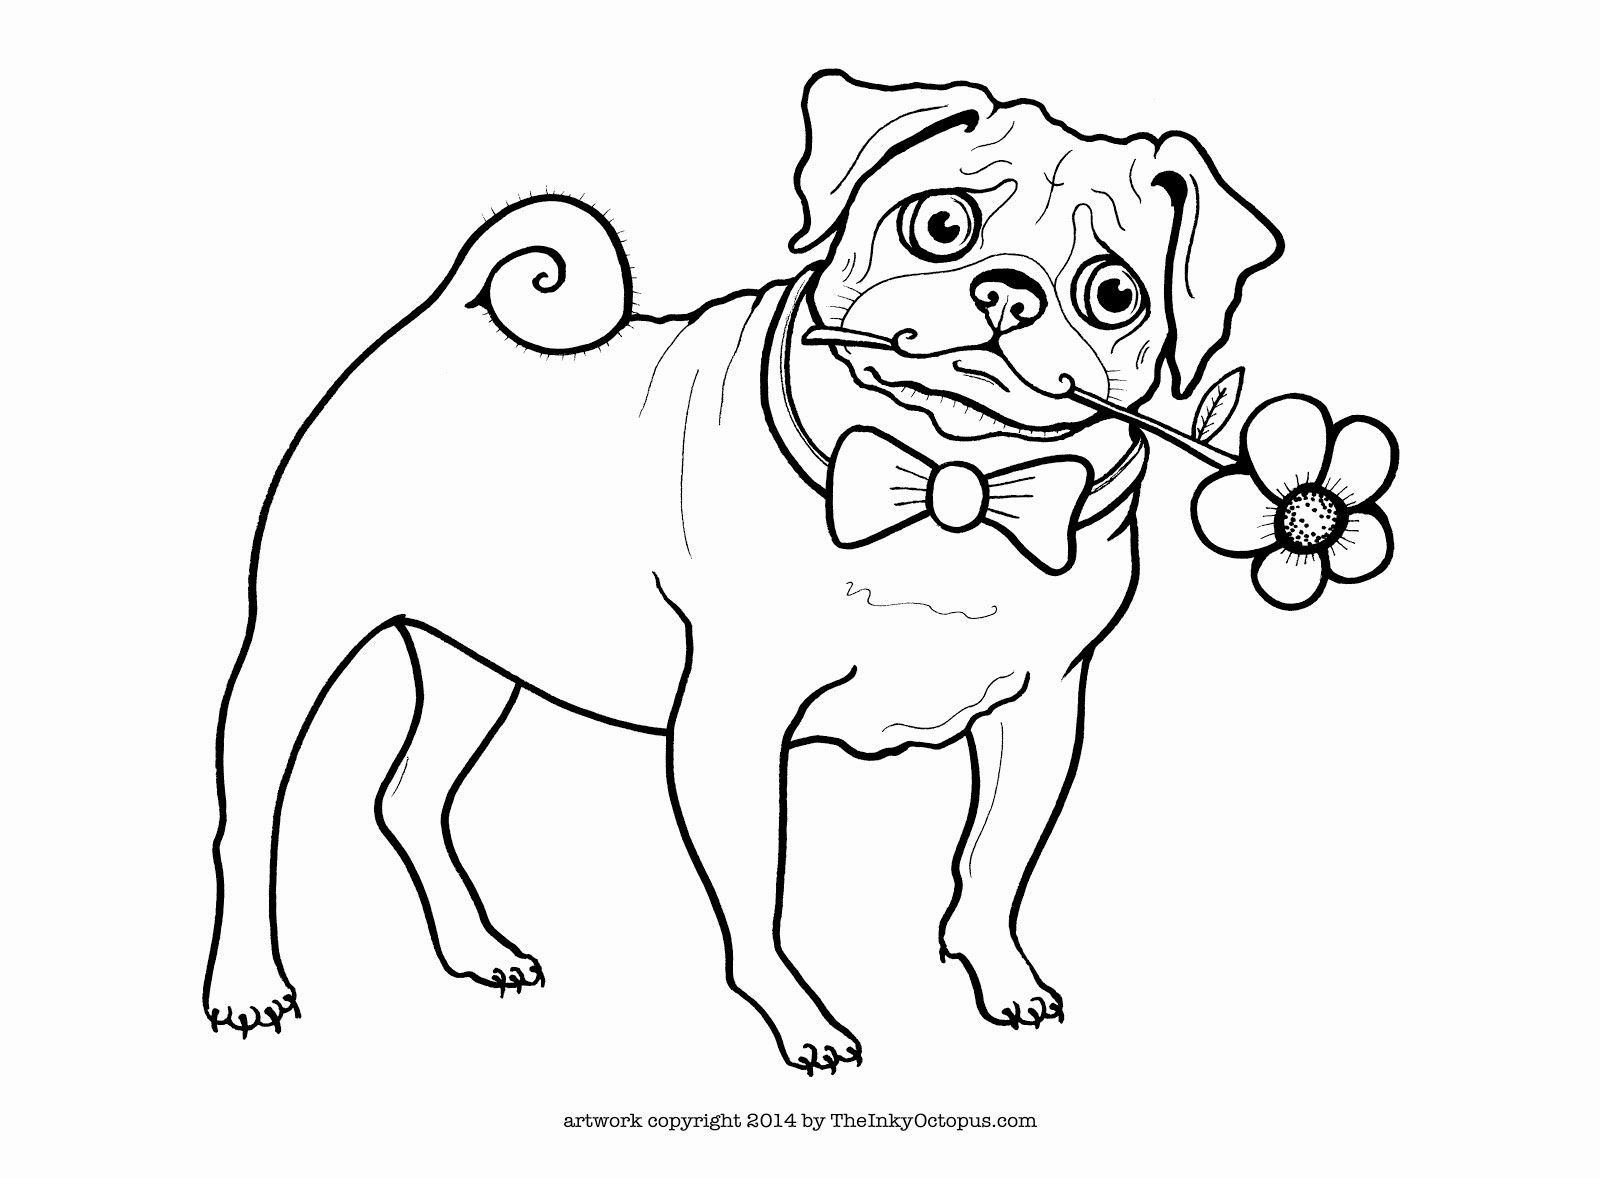 30 Doug The Pug Coloring Book Puppy Coloring Pages Dog